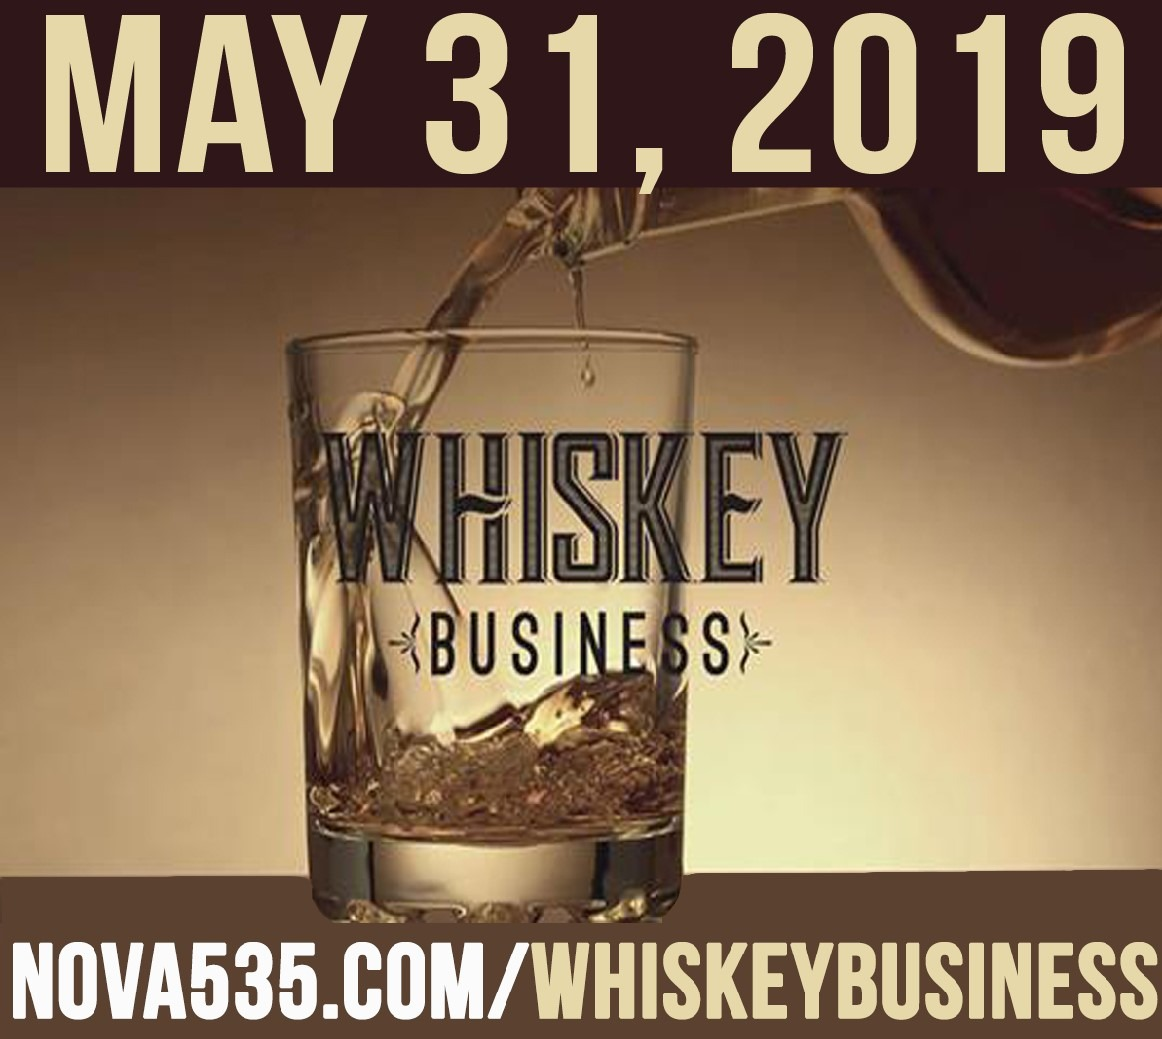 2019 05-31 Whiskey Business at Downtown St. Pete NOVA 535 - Web Flyer